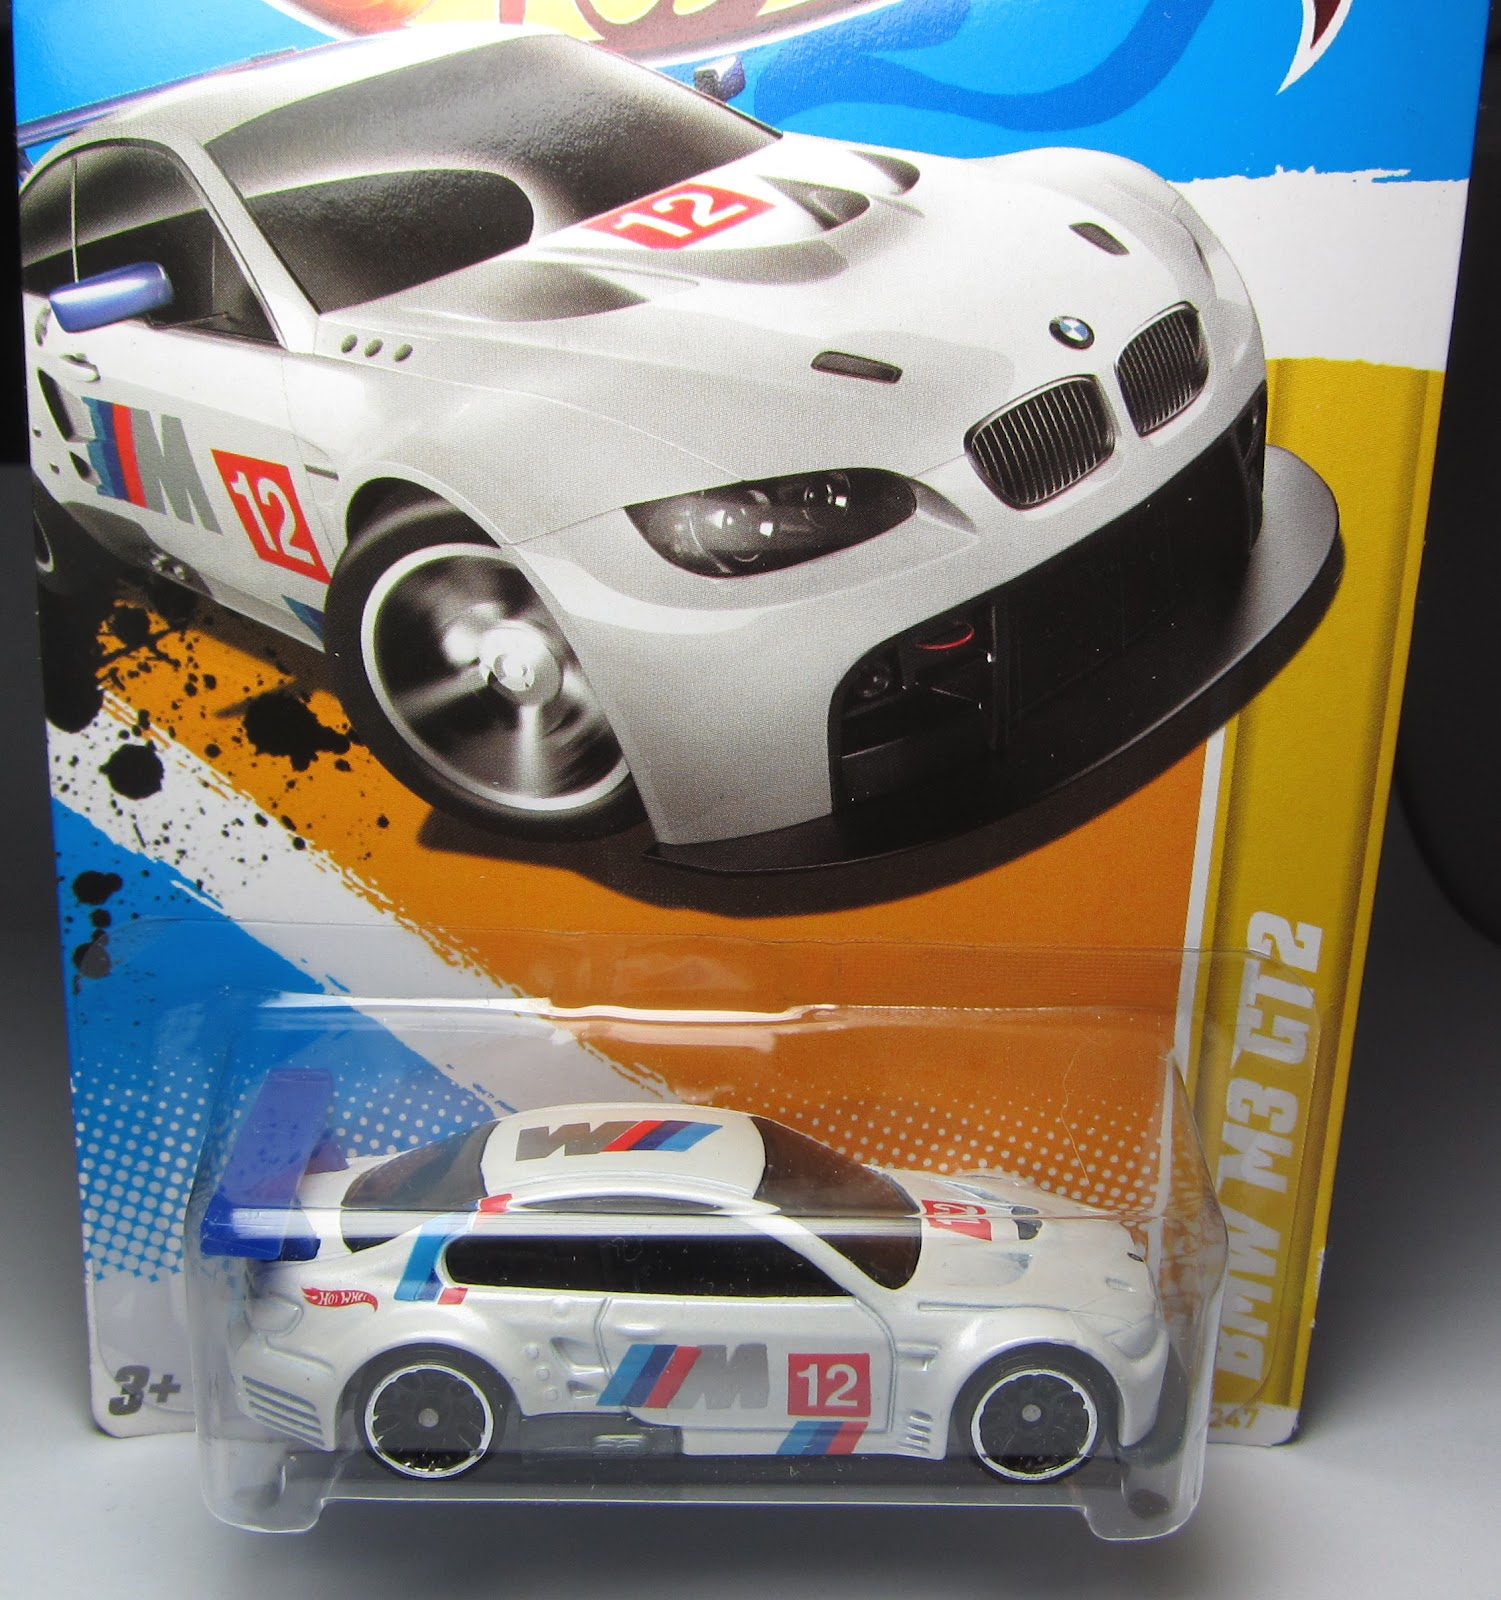 Variation Alert Two More Wheel Variations On The Hot Wheels Bmw M3